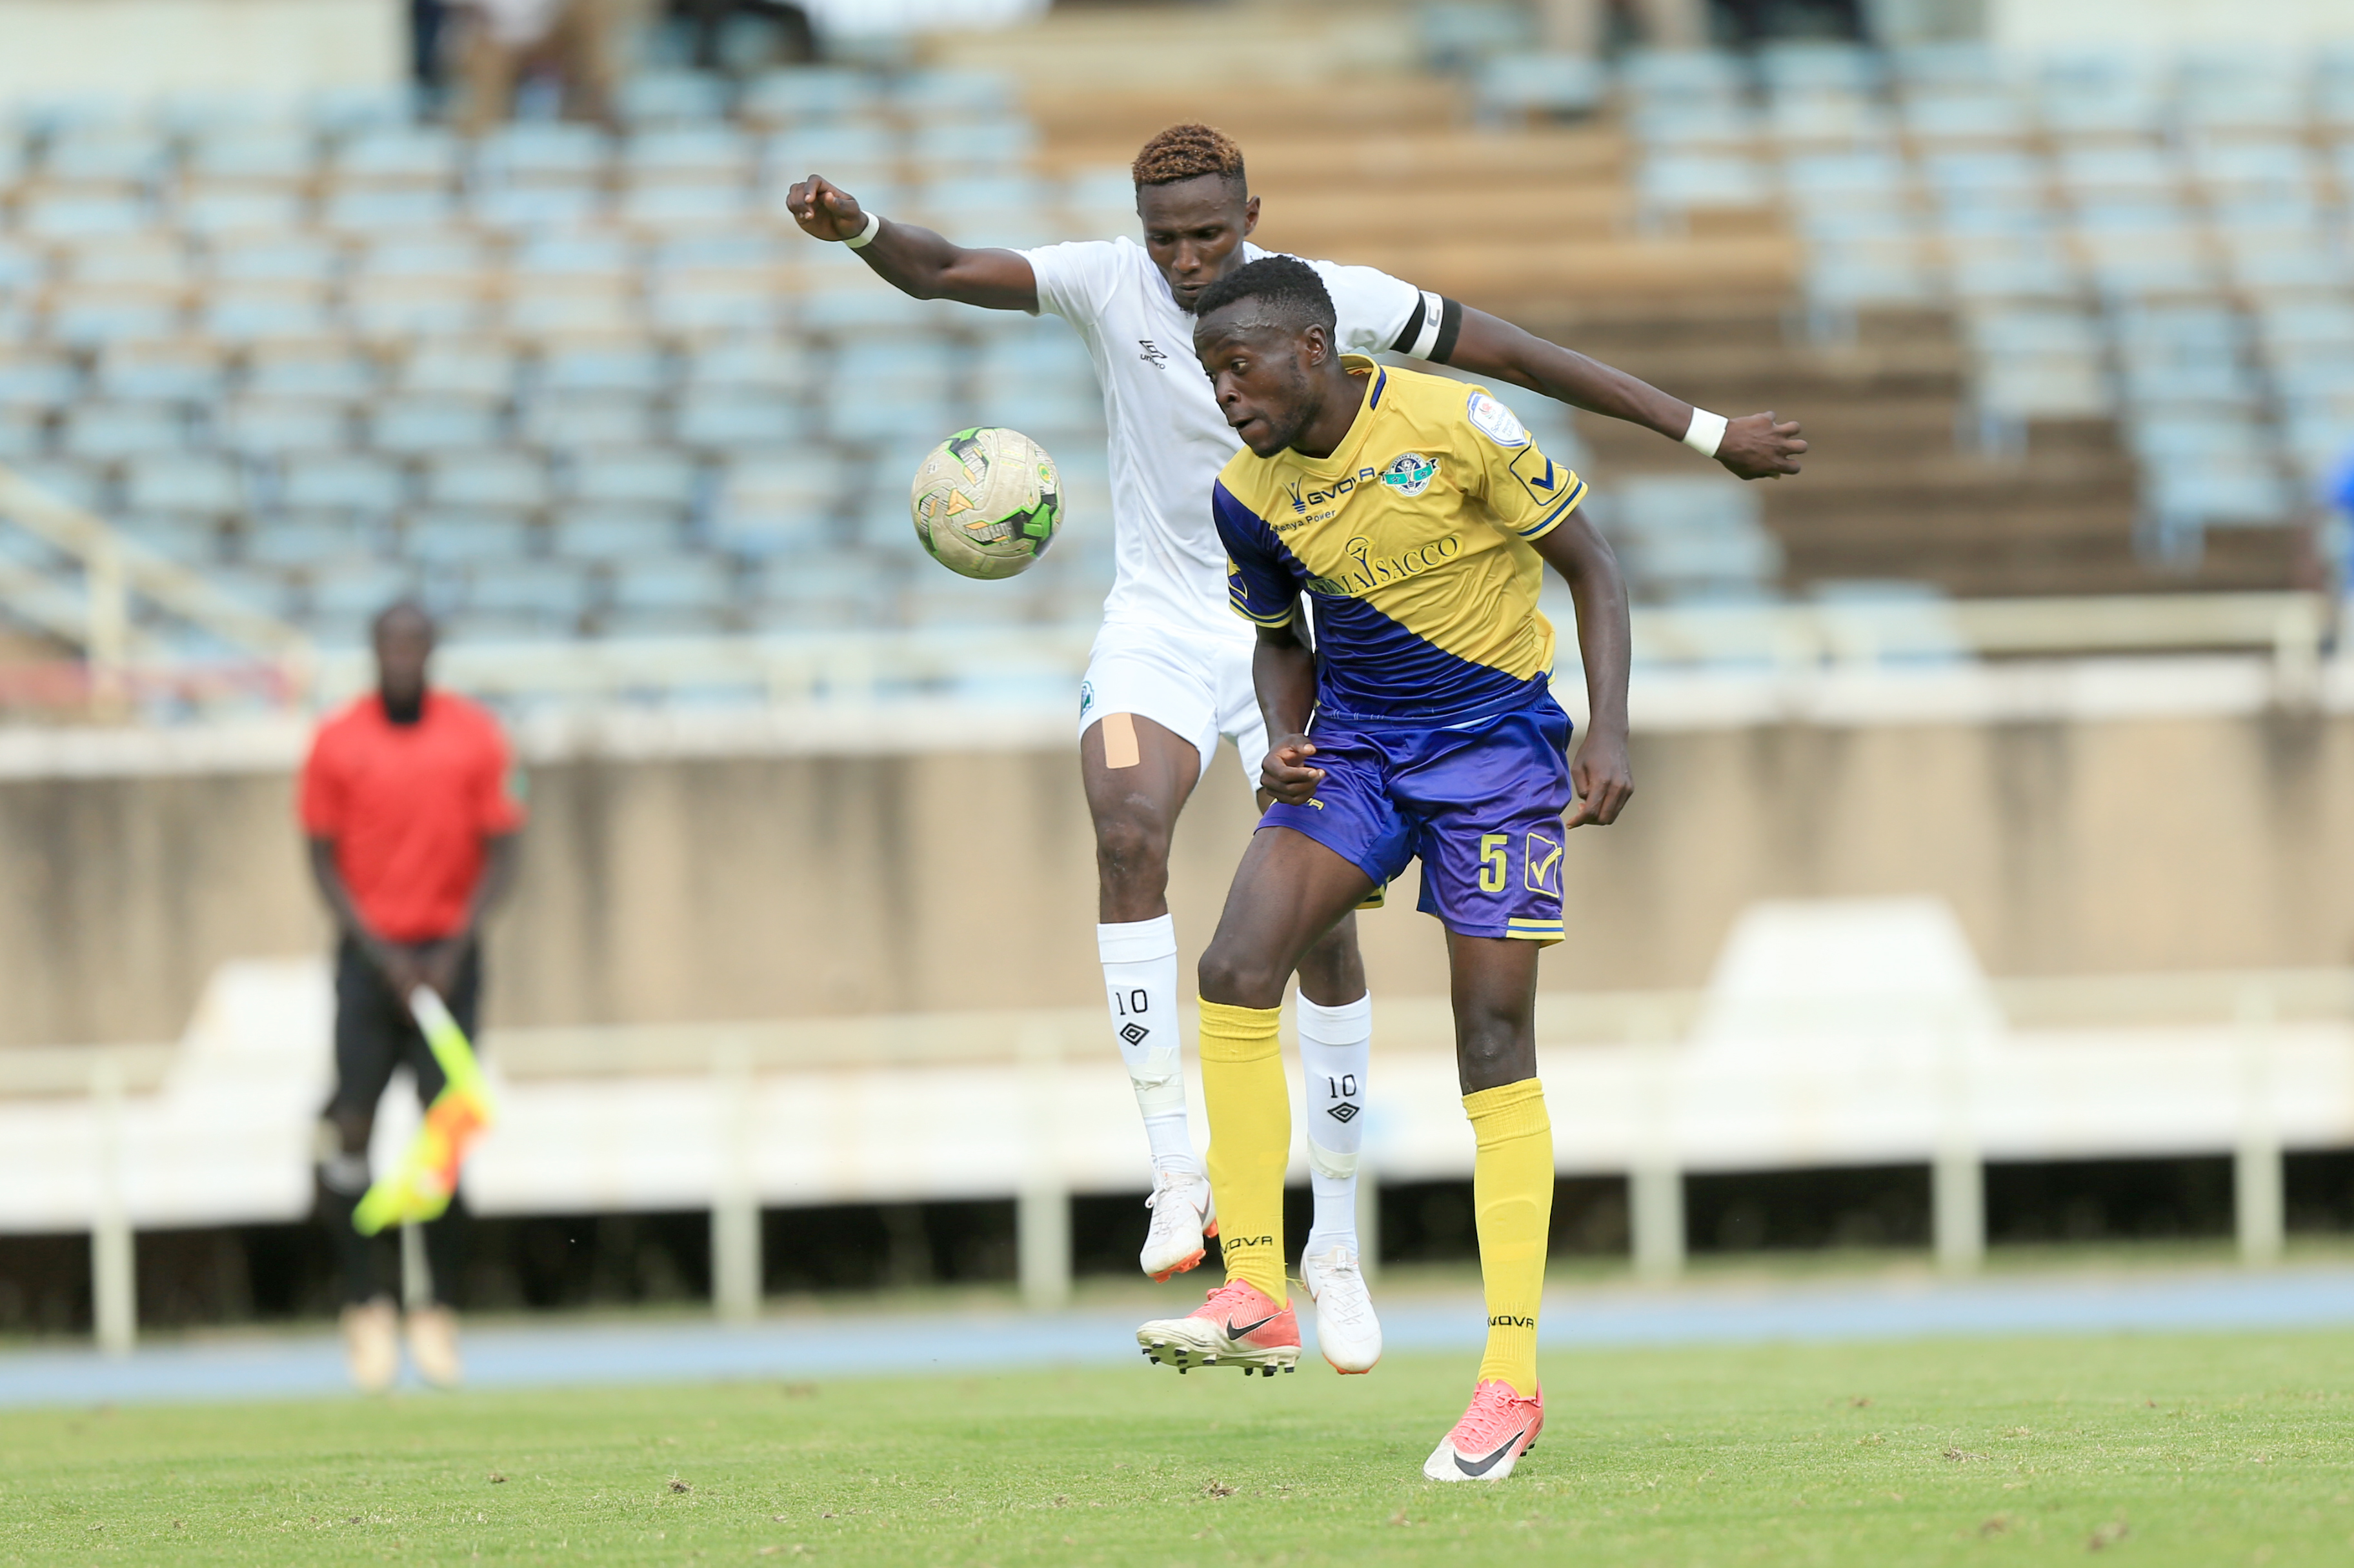 KPL round-up: Gor Mahia extend lead after win against Western Stima; Rupia to AFC's rescue